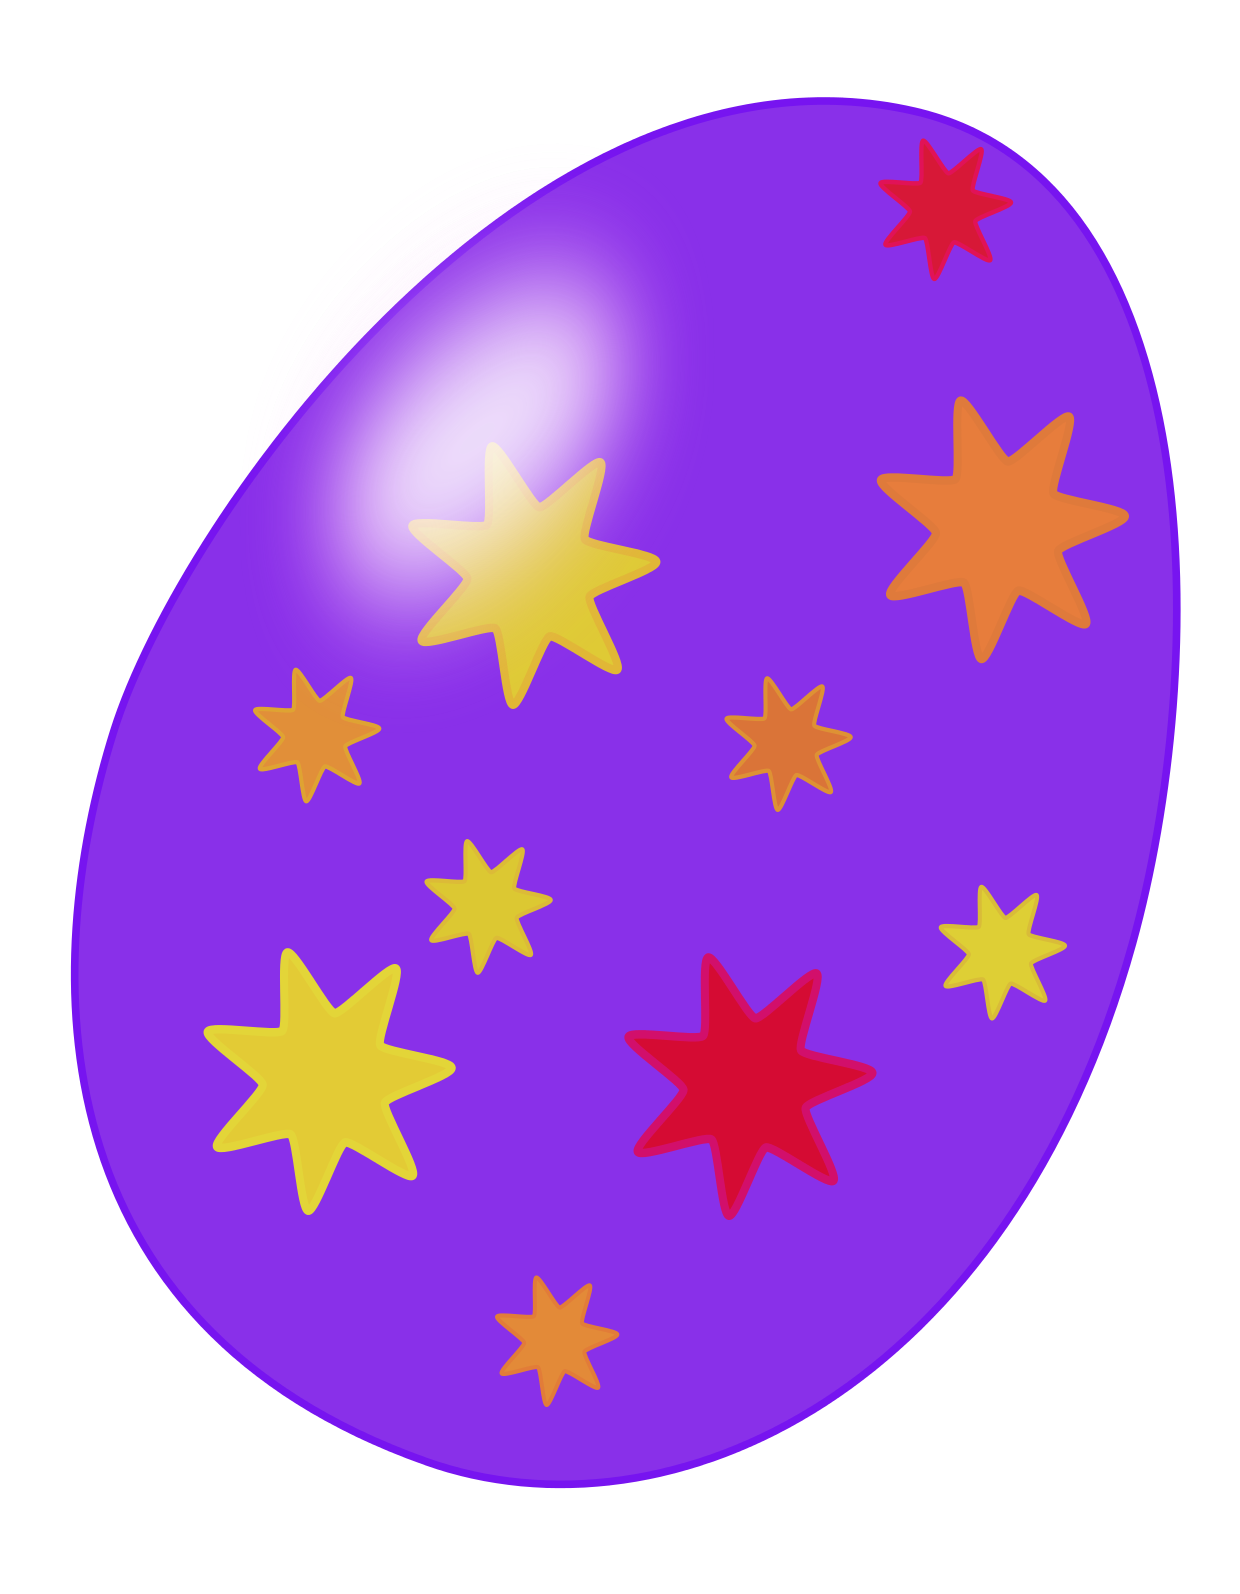 Free Easter Egg Clipart, Download Free Clip Art, Free Clip.